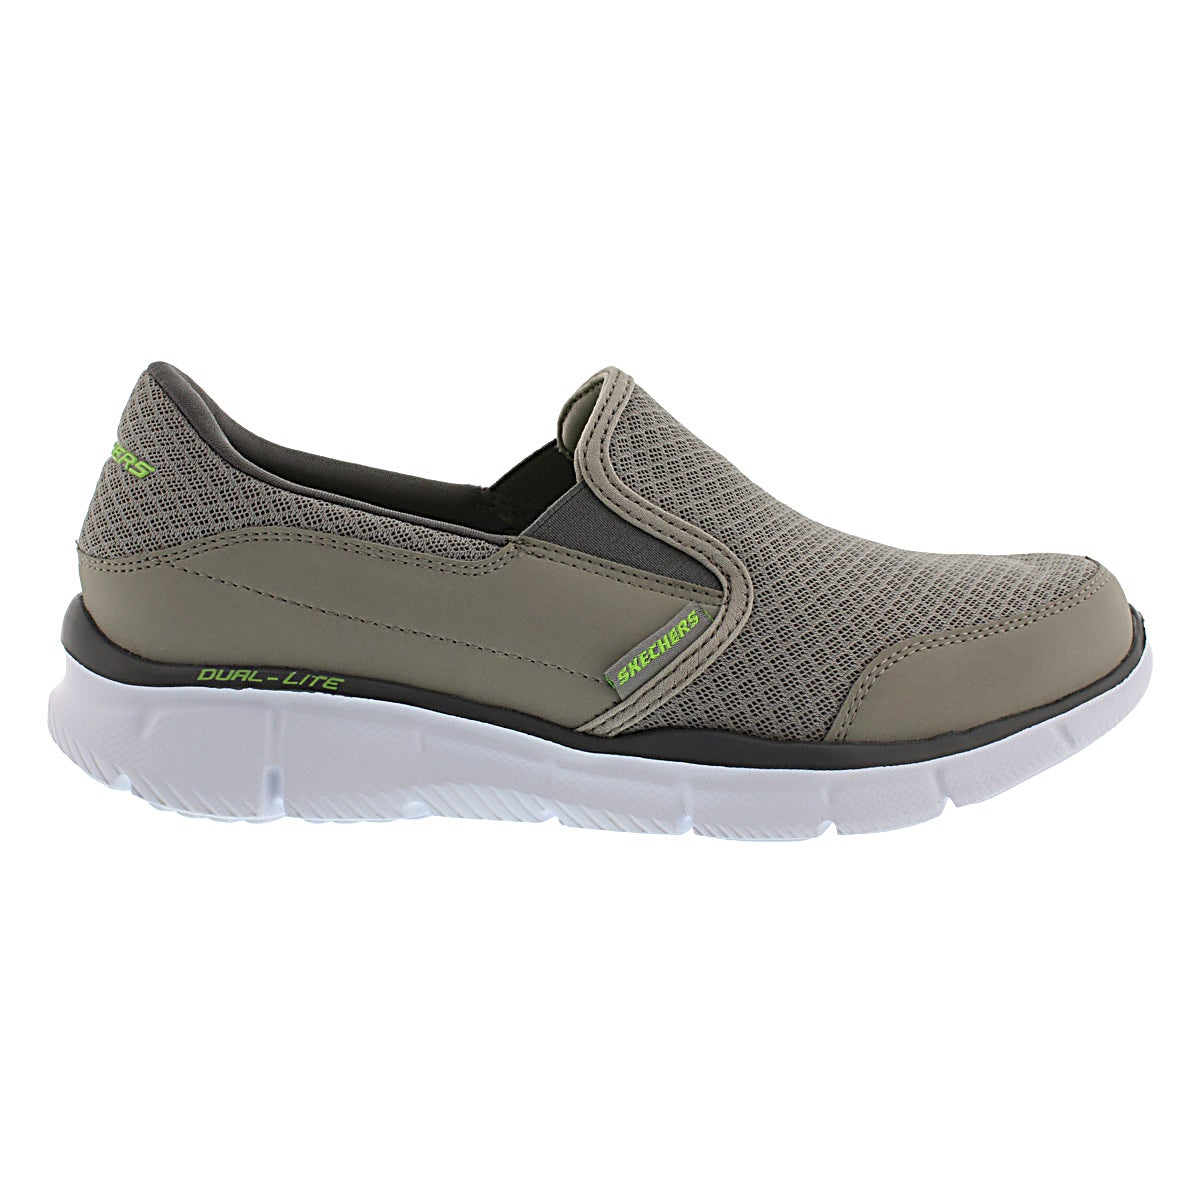 Mns Persistent grey slip on sneaker